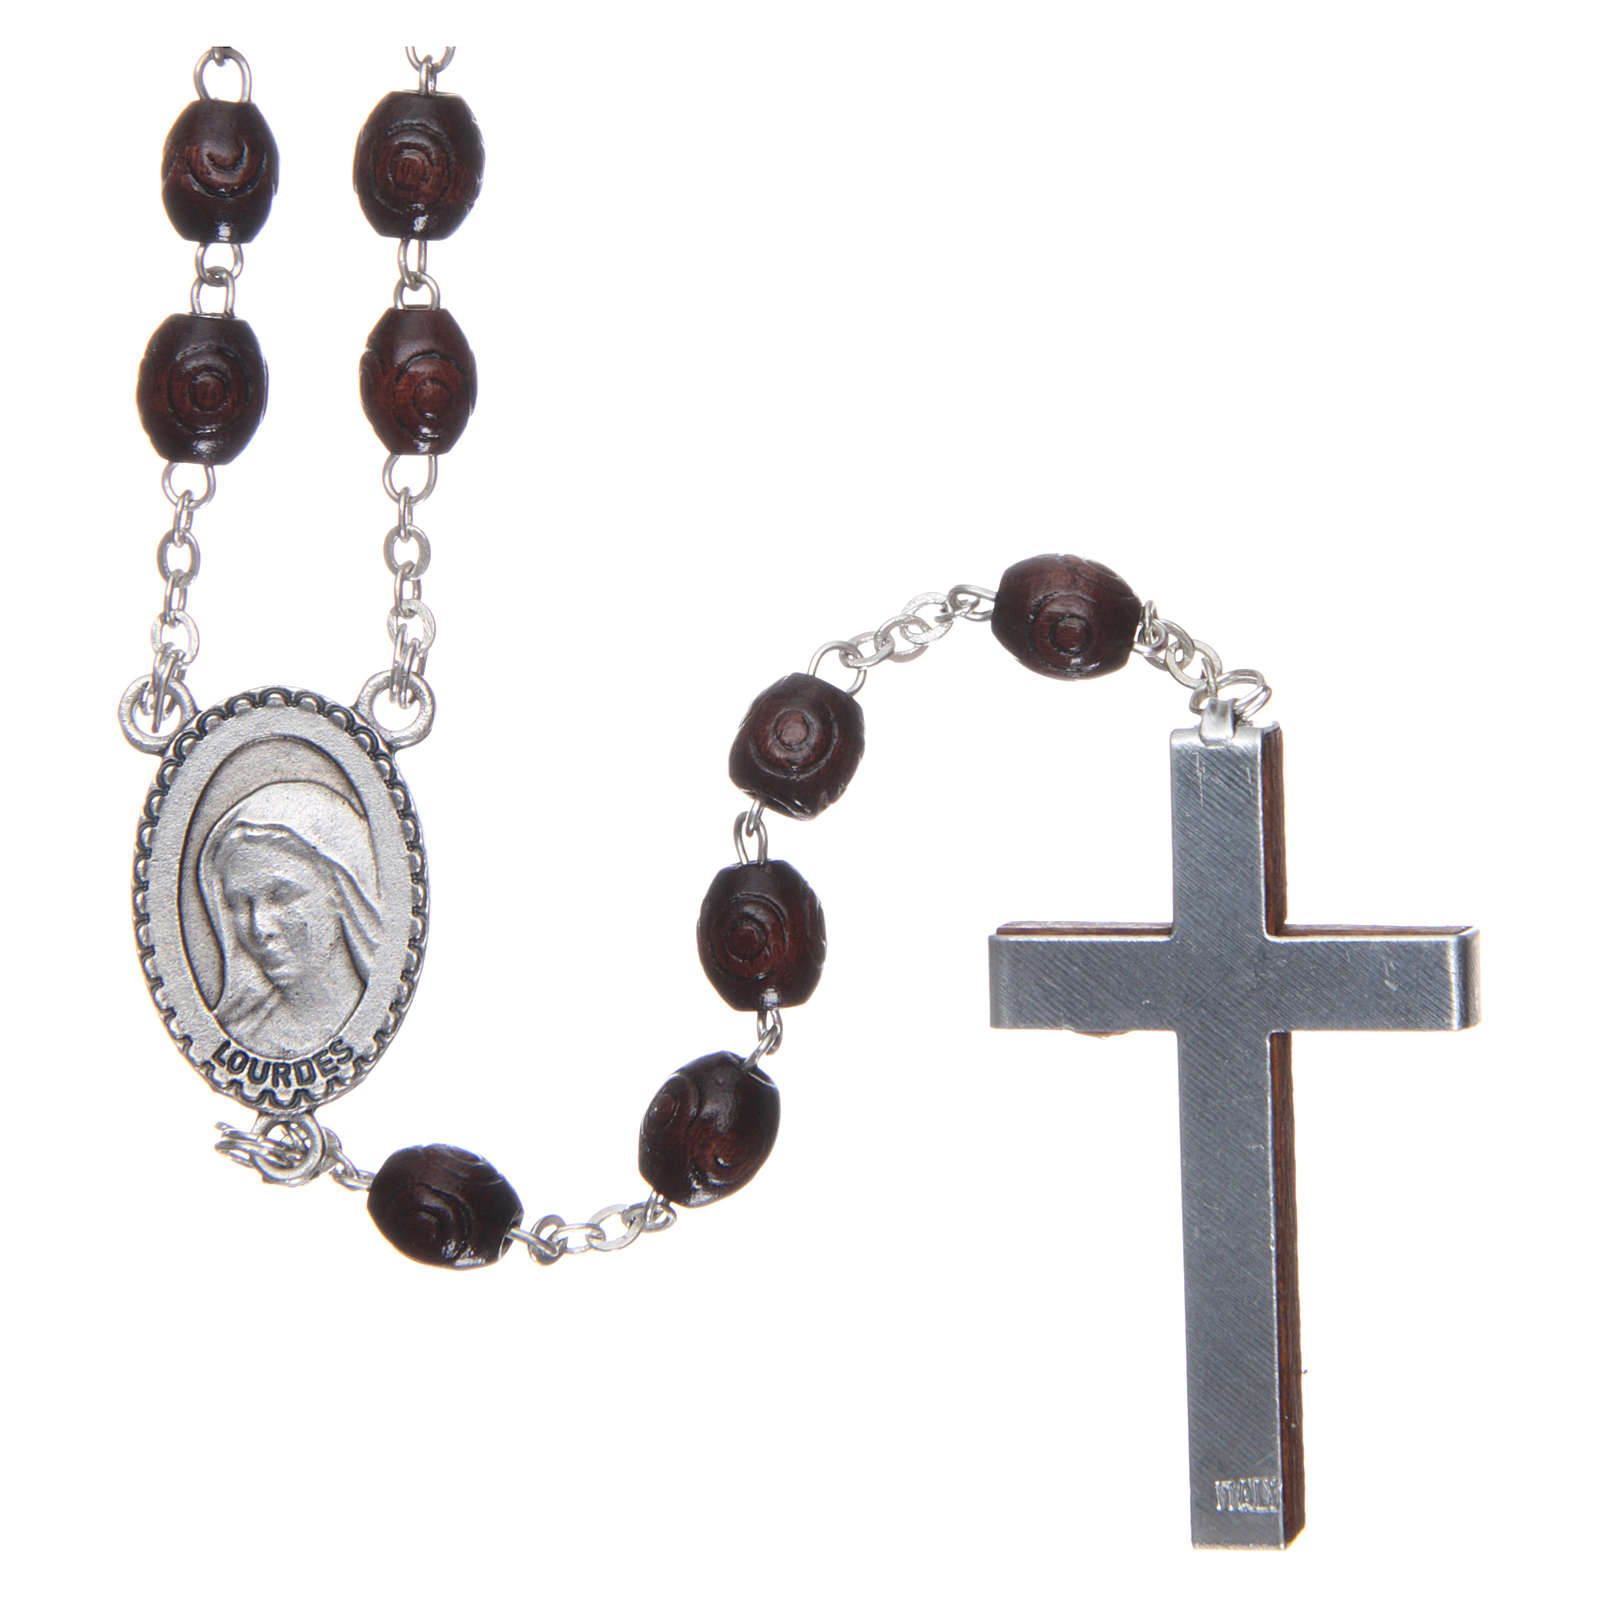 Our Lady of Lourdes wooden rosary 5 mm beads, dark brown 4